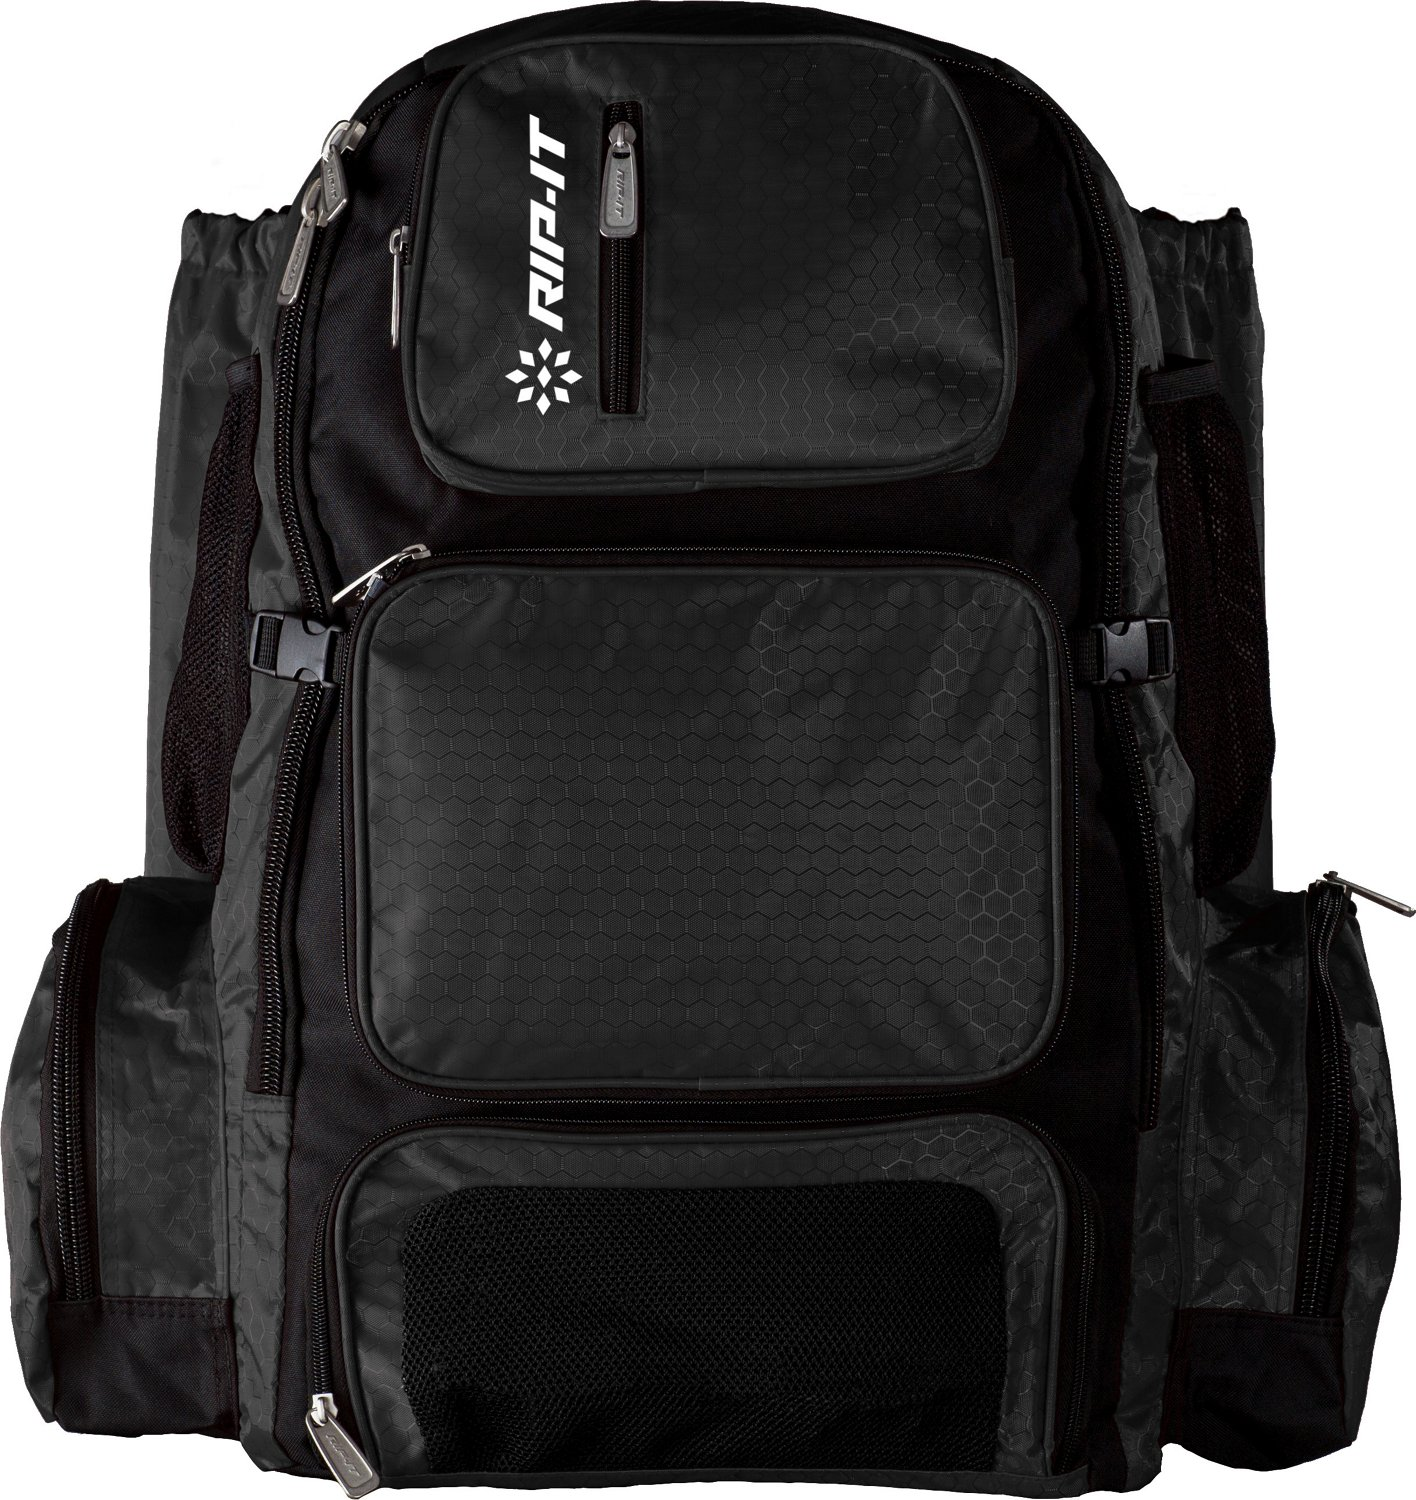 19c6ce9a78fc7 Display product reviews for RIP-IT Pack-It-Up 23 in Softball Backpack